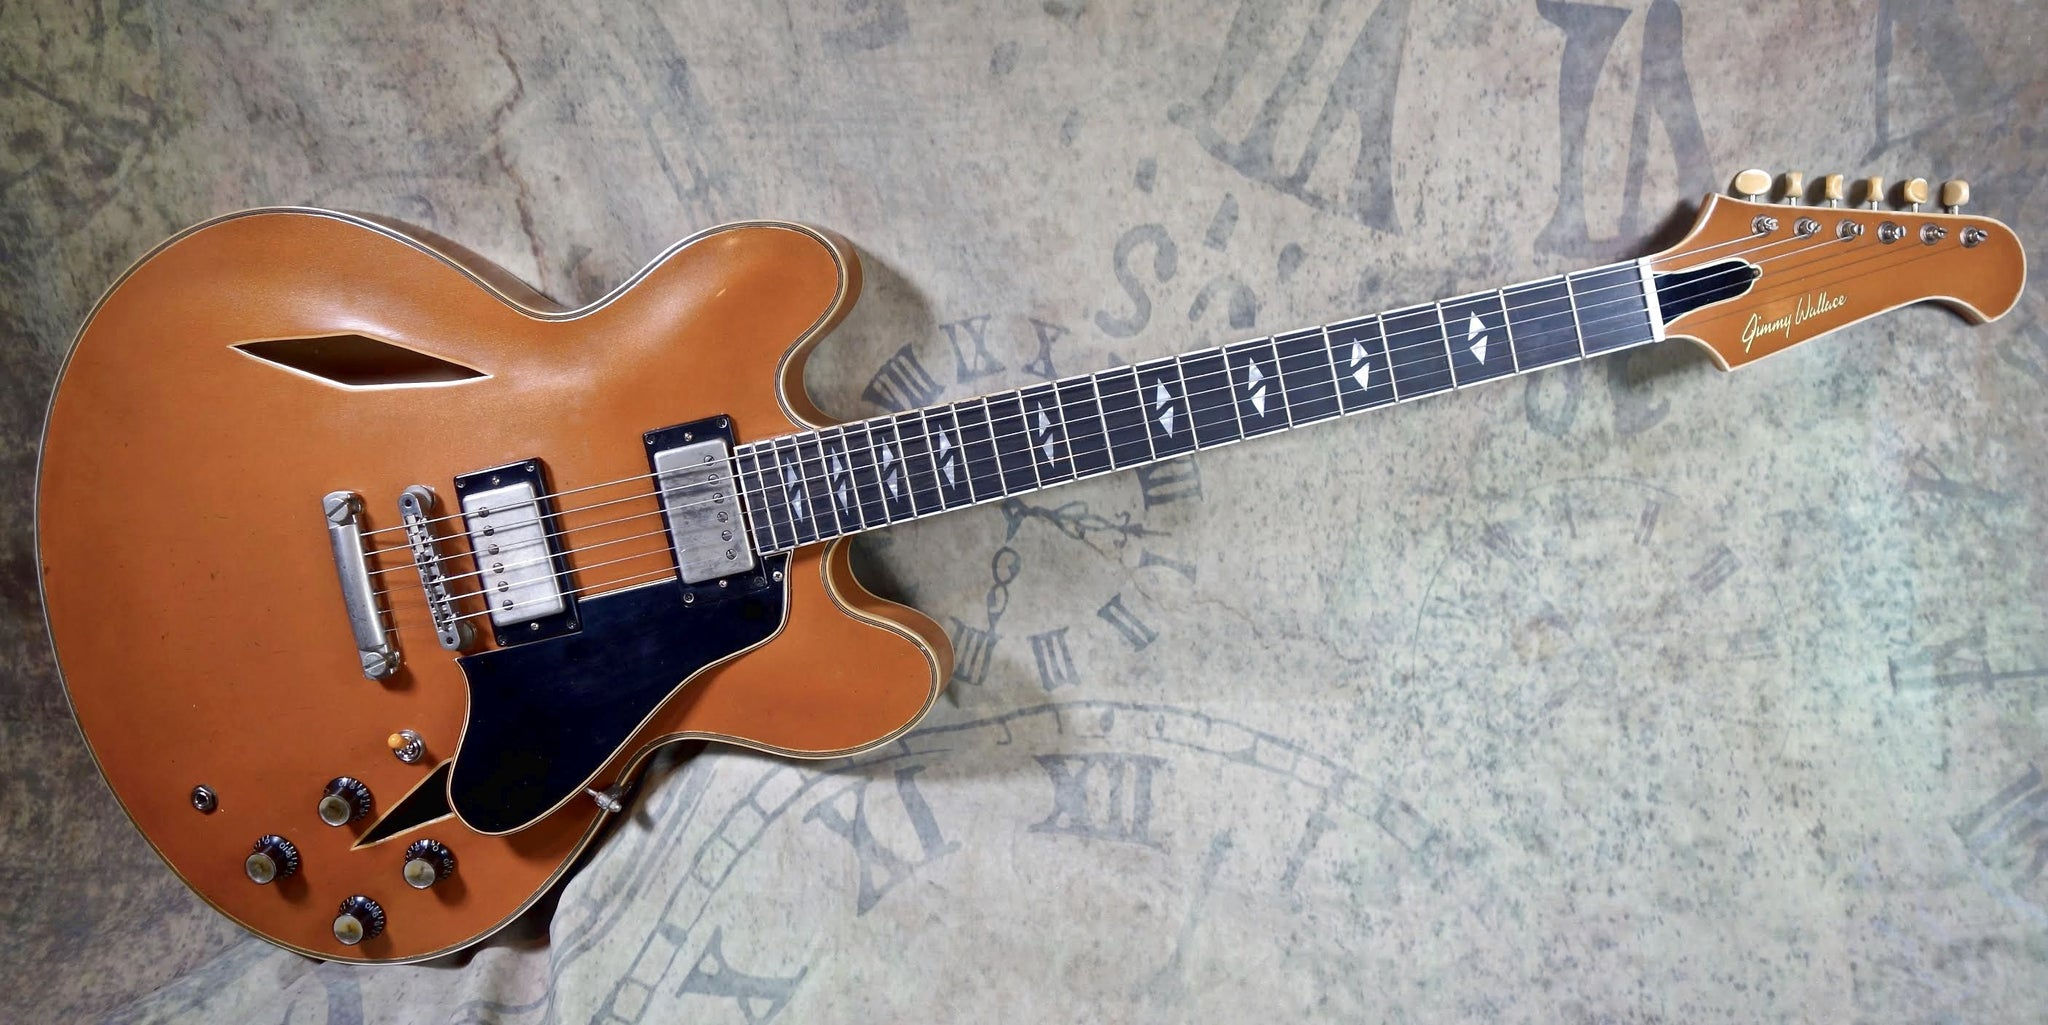 **** SOLD **** Jimmy Wallace DG in Aged Copper Metallic Finish